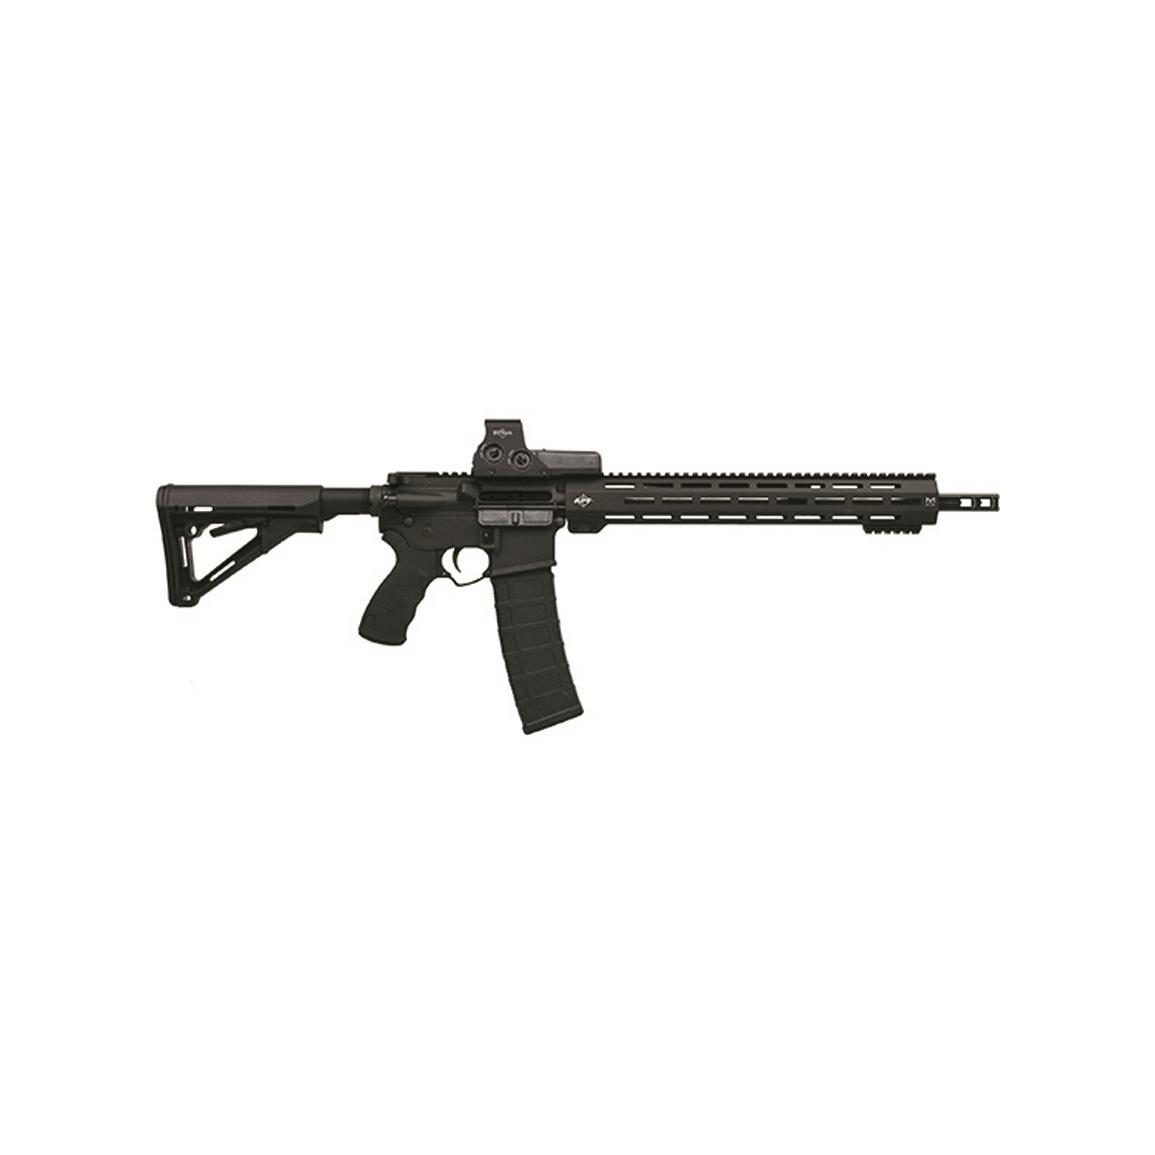 "APF AR-15, Semi-Automatic, .223 Wylde, 16"" Barrel, EOTech 512.A65 Holo Sight, Black, 40+1 Rds."